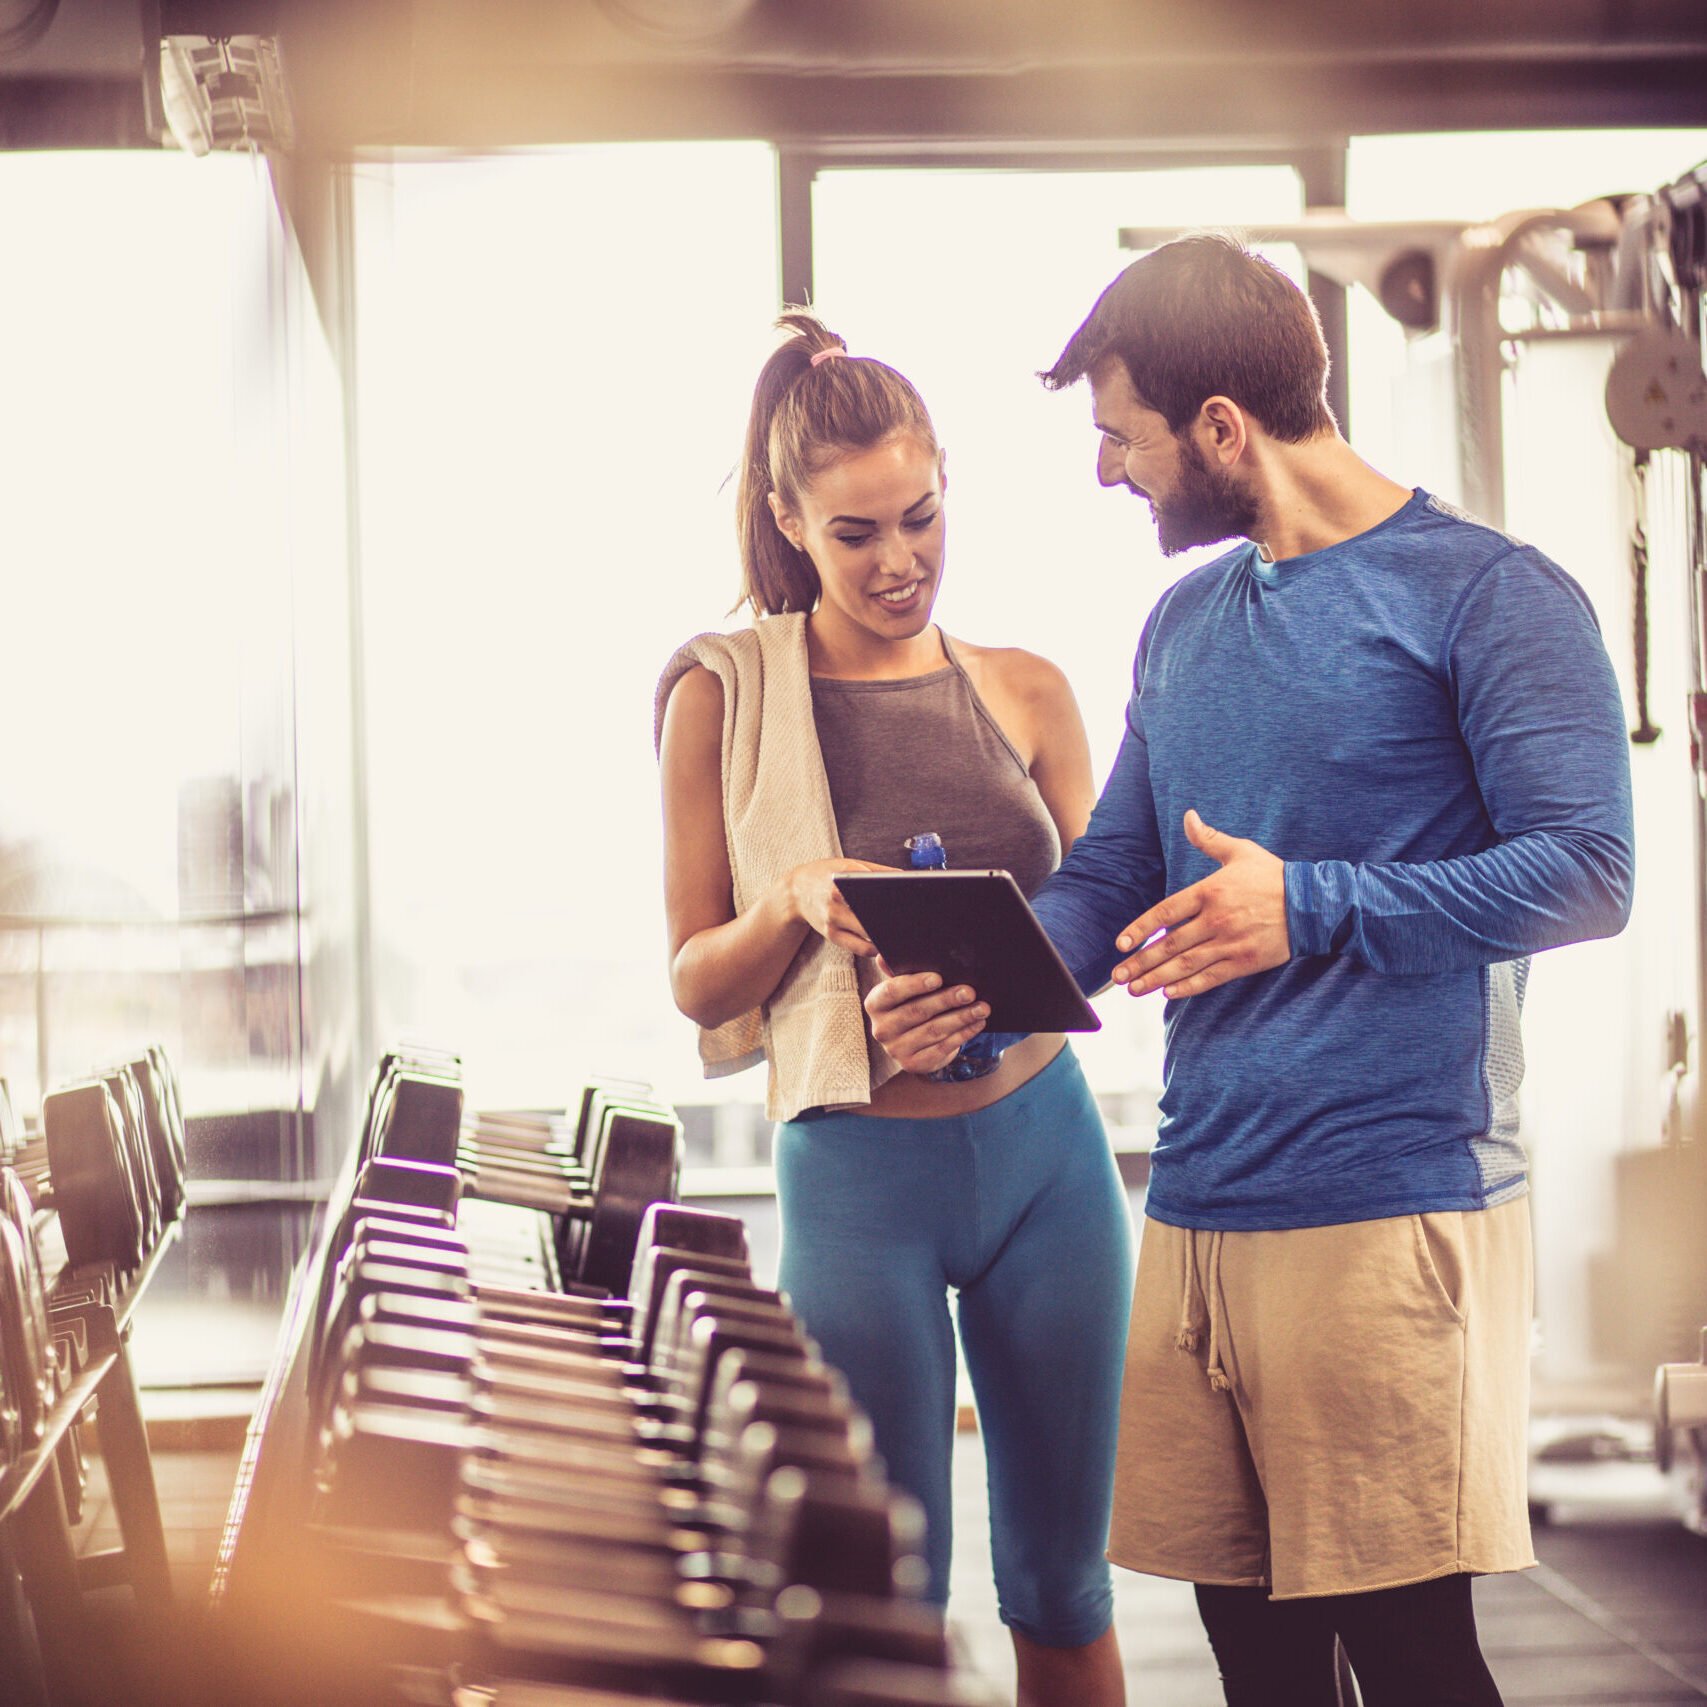 Young woman discussing workout progress with fitness instructor.